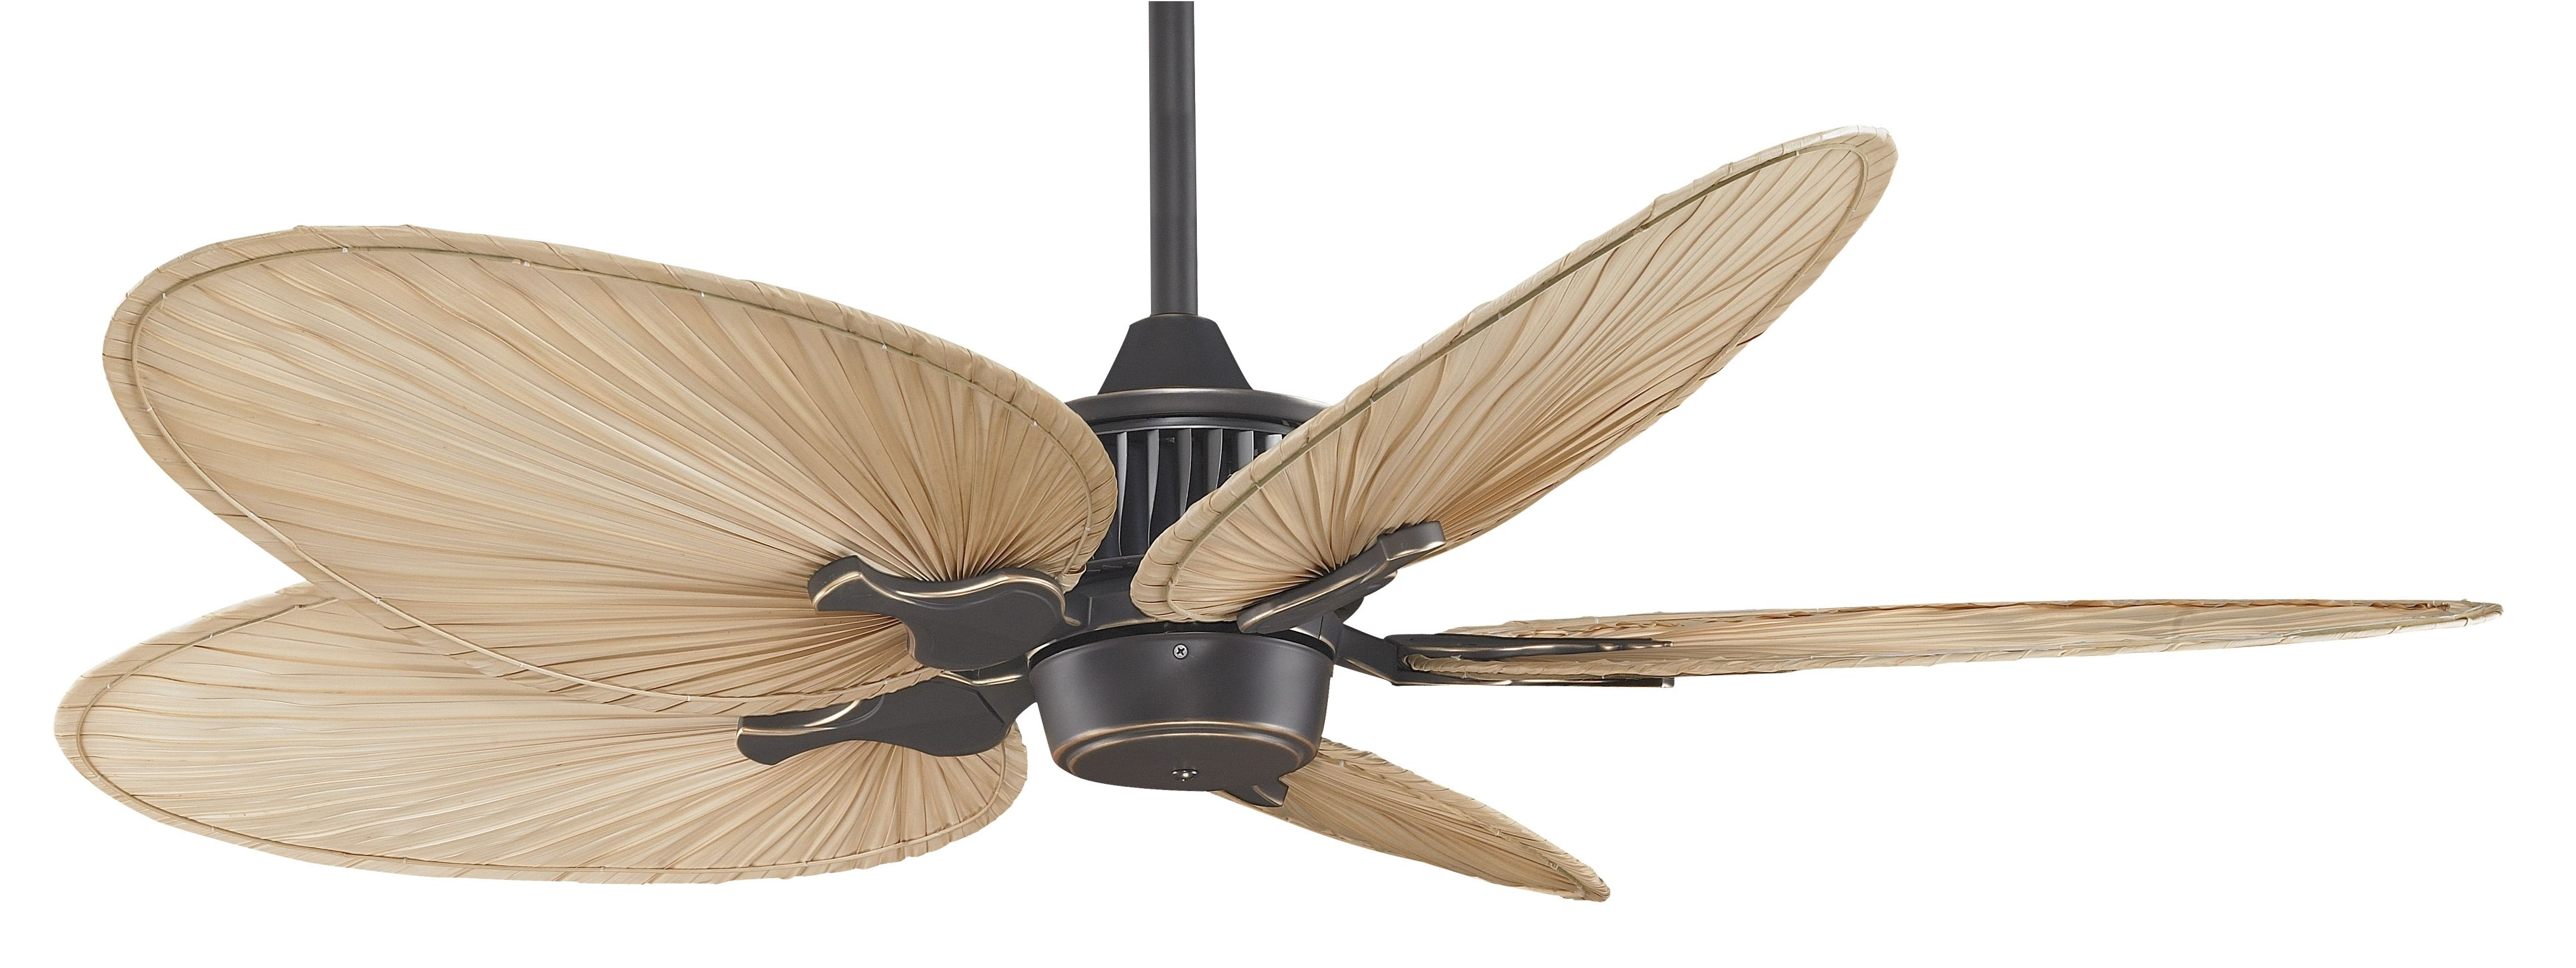 home round ceiling shipping overstock led product with fan blades free remote today fandelier retractable garden